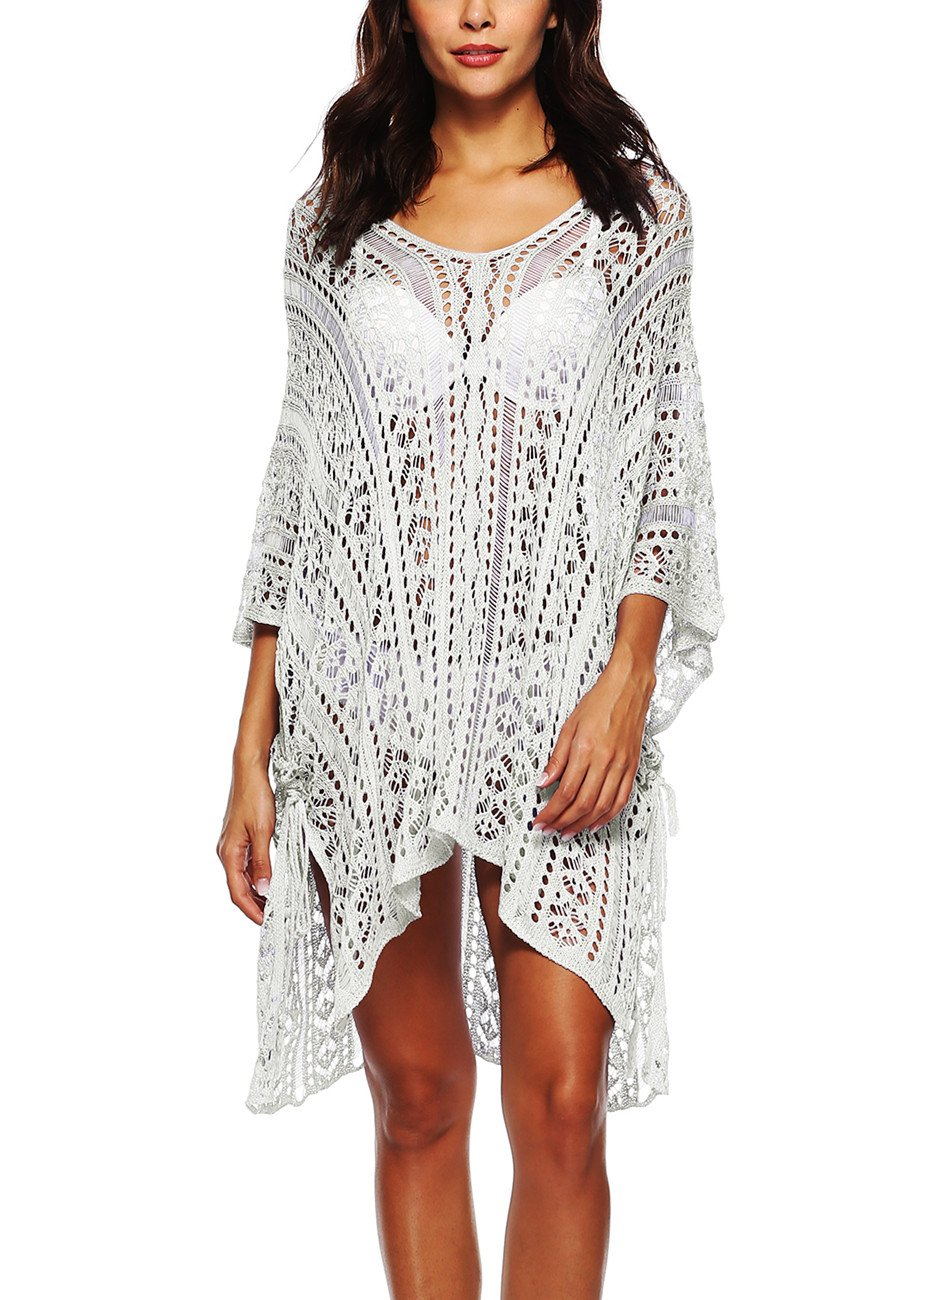 DearQ Beach Swimsuit for Women Poncho Sleeve Coverups Plus Size Bikini Cover up Net White